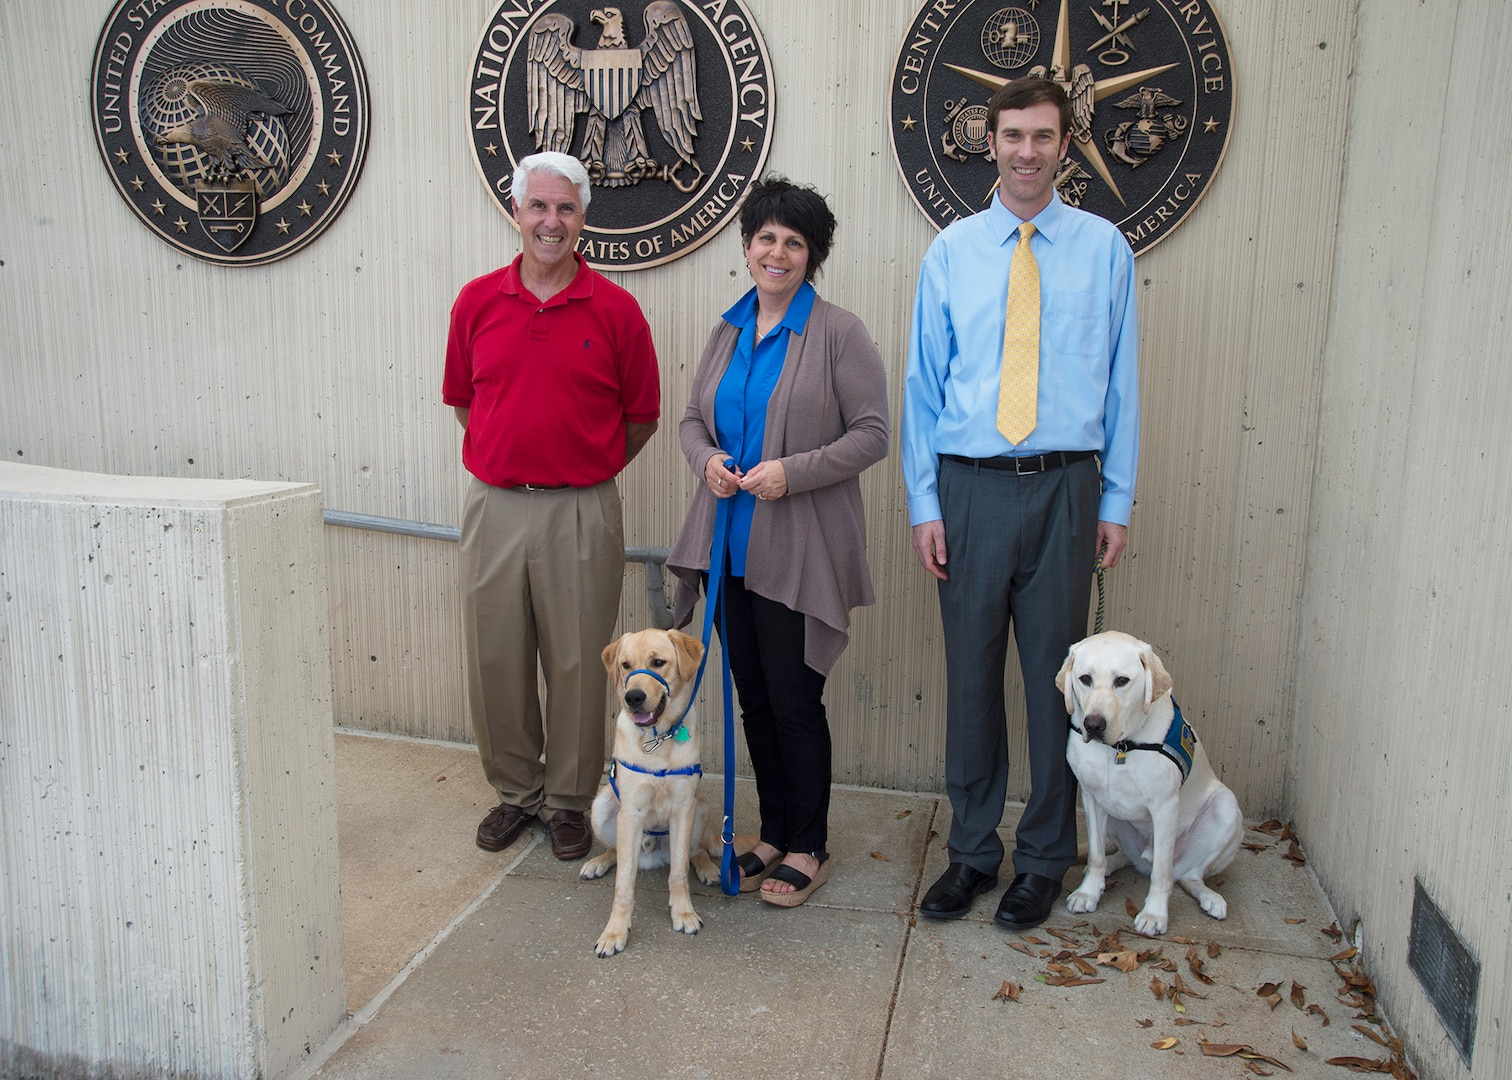 (From L to R) Pete Geoghan, Sharon Shoemaker with Zeppelin, and John Barbare with Coby.